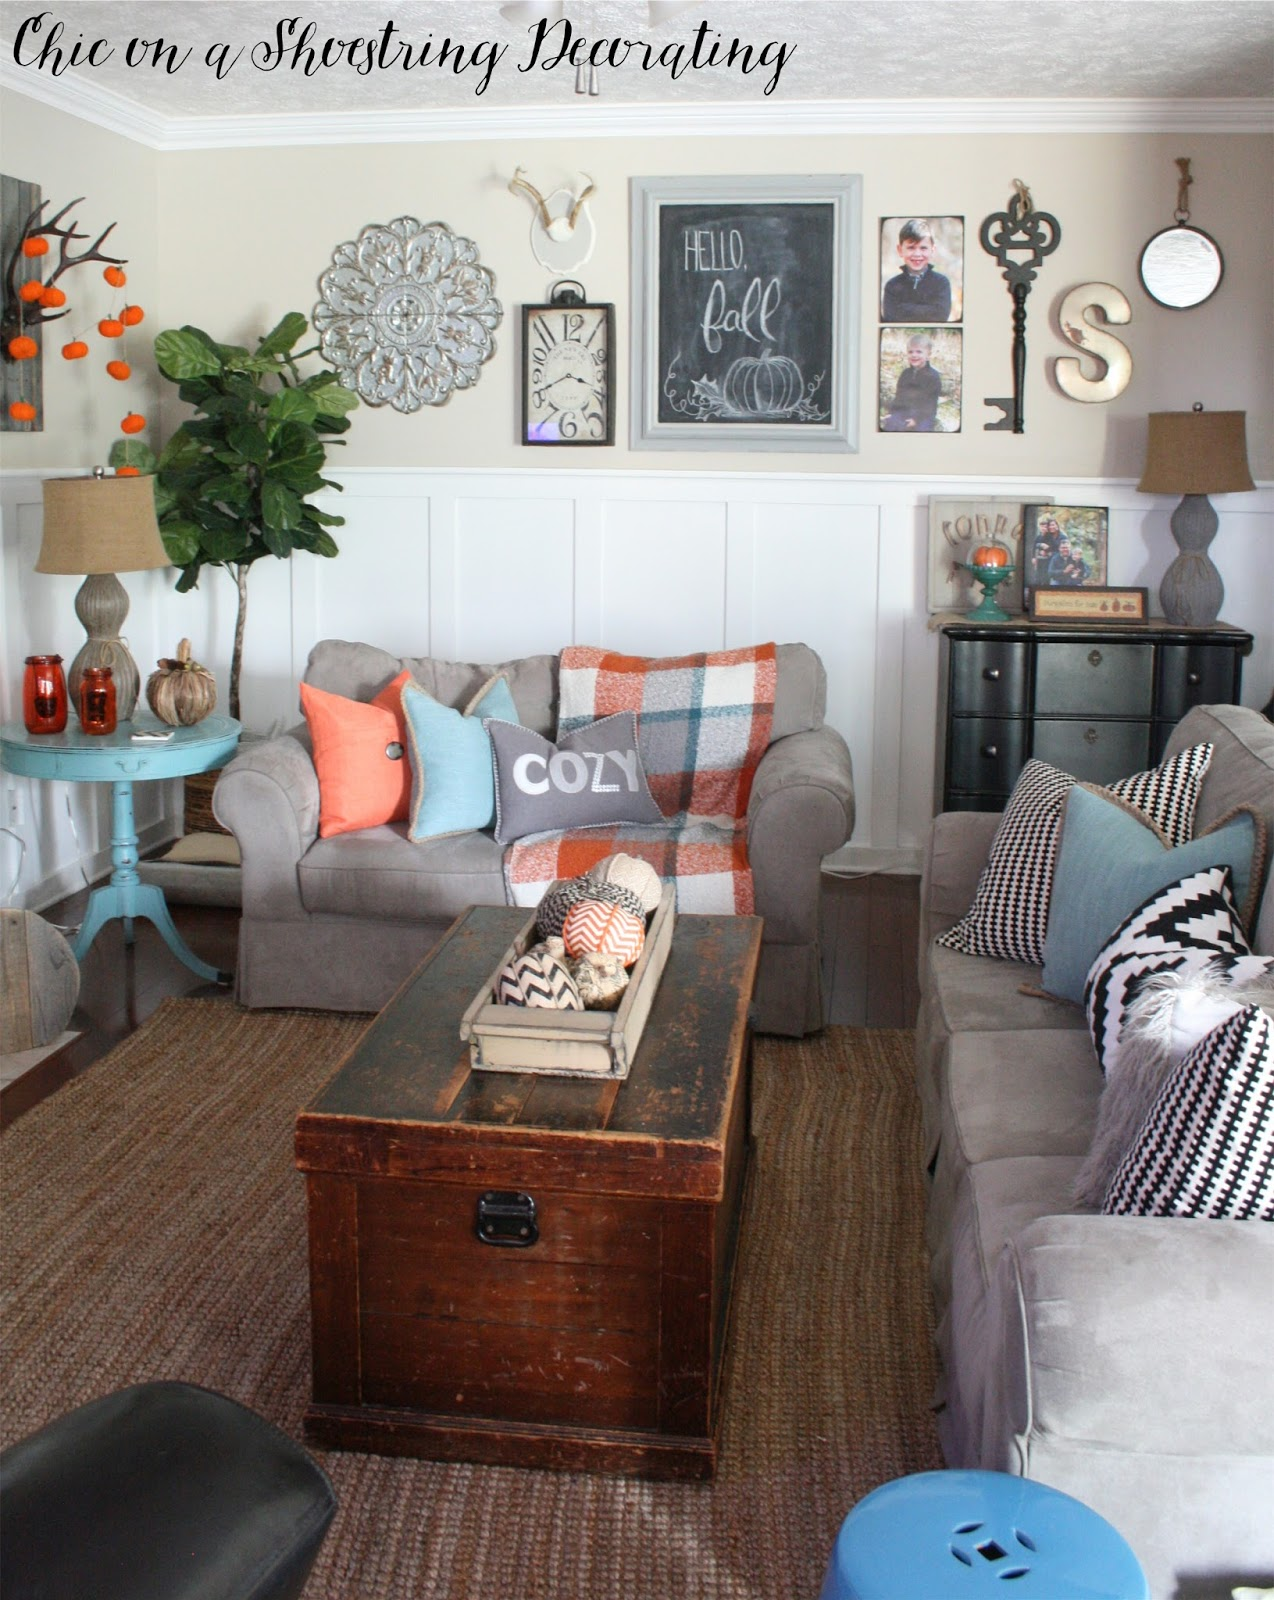 Genial Fall Farmhouse Decor Gallery Wall Chic On A Shoestring Decorating Blog